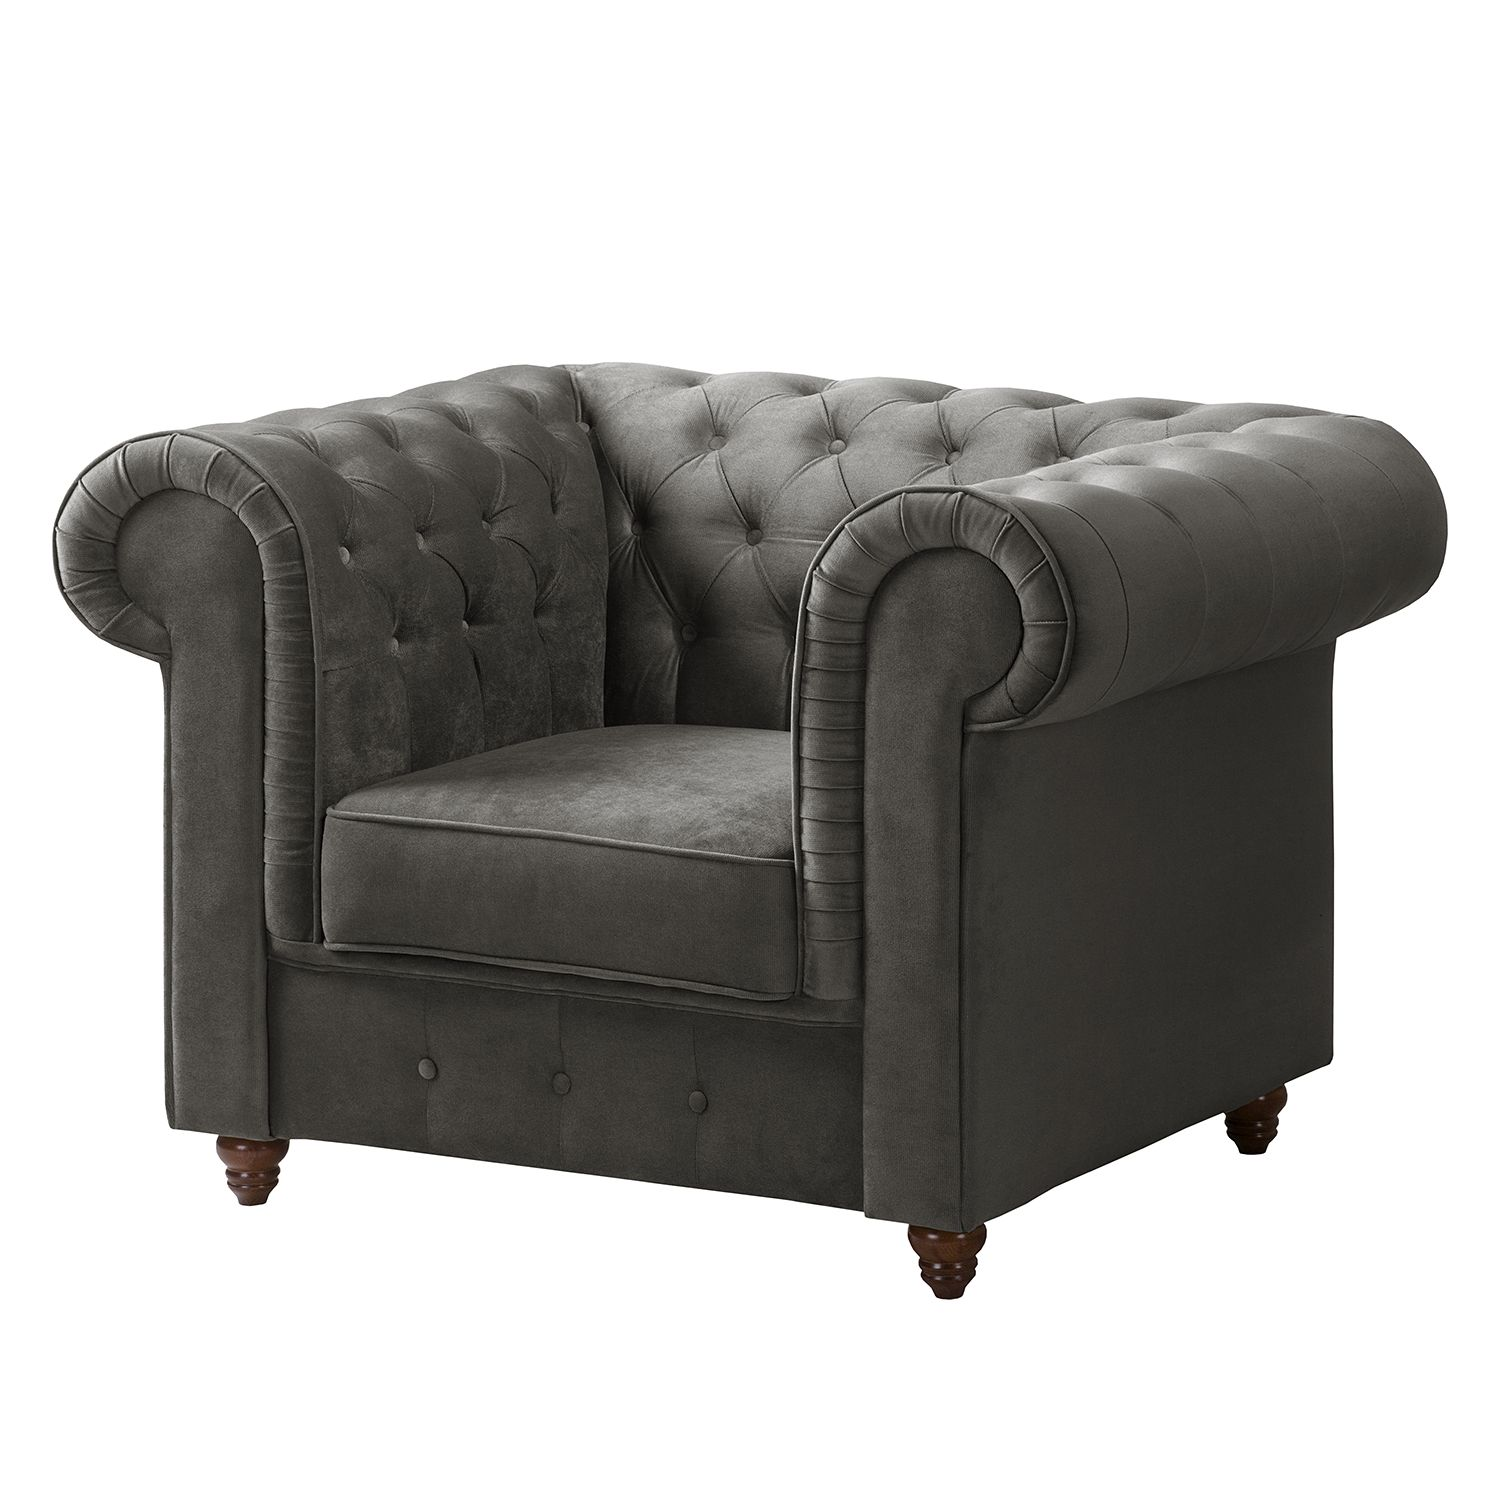 Fauteuil Chesterfield Pintano - Velours - Gris, Maison Belfort